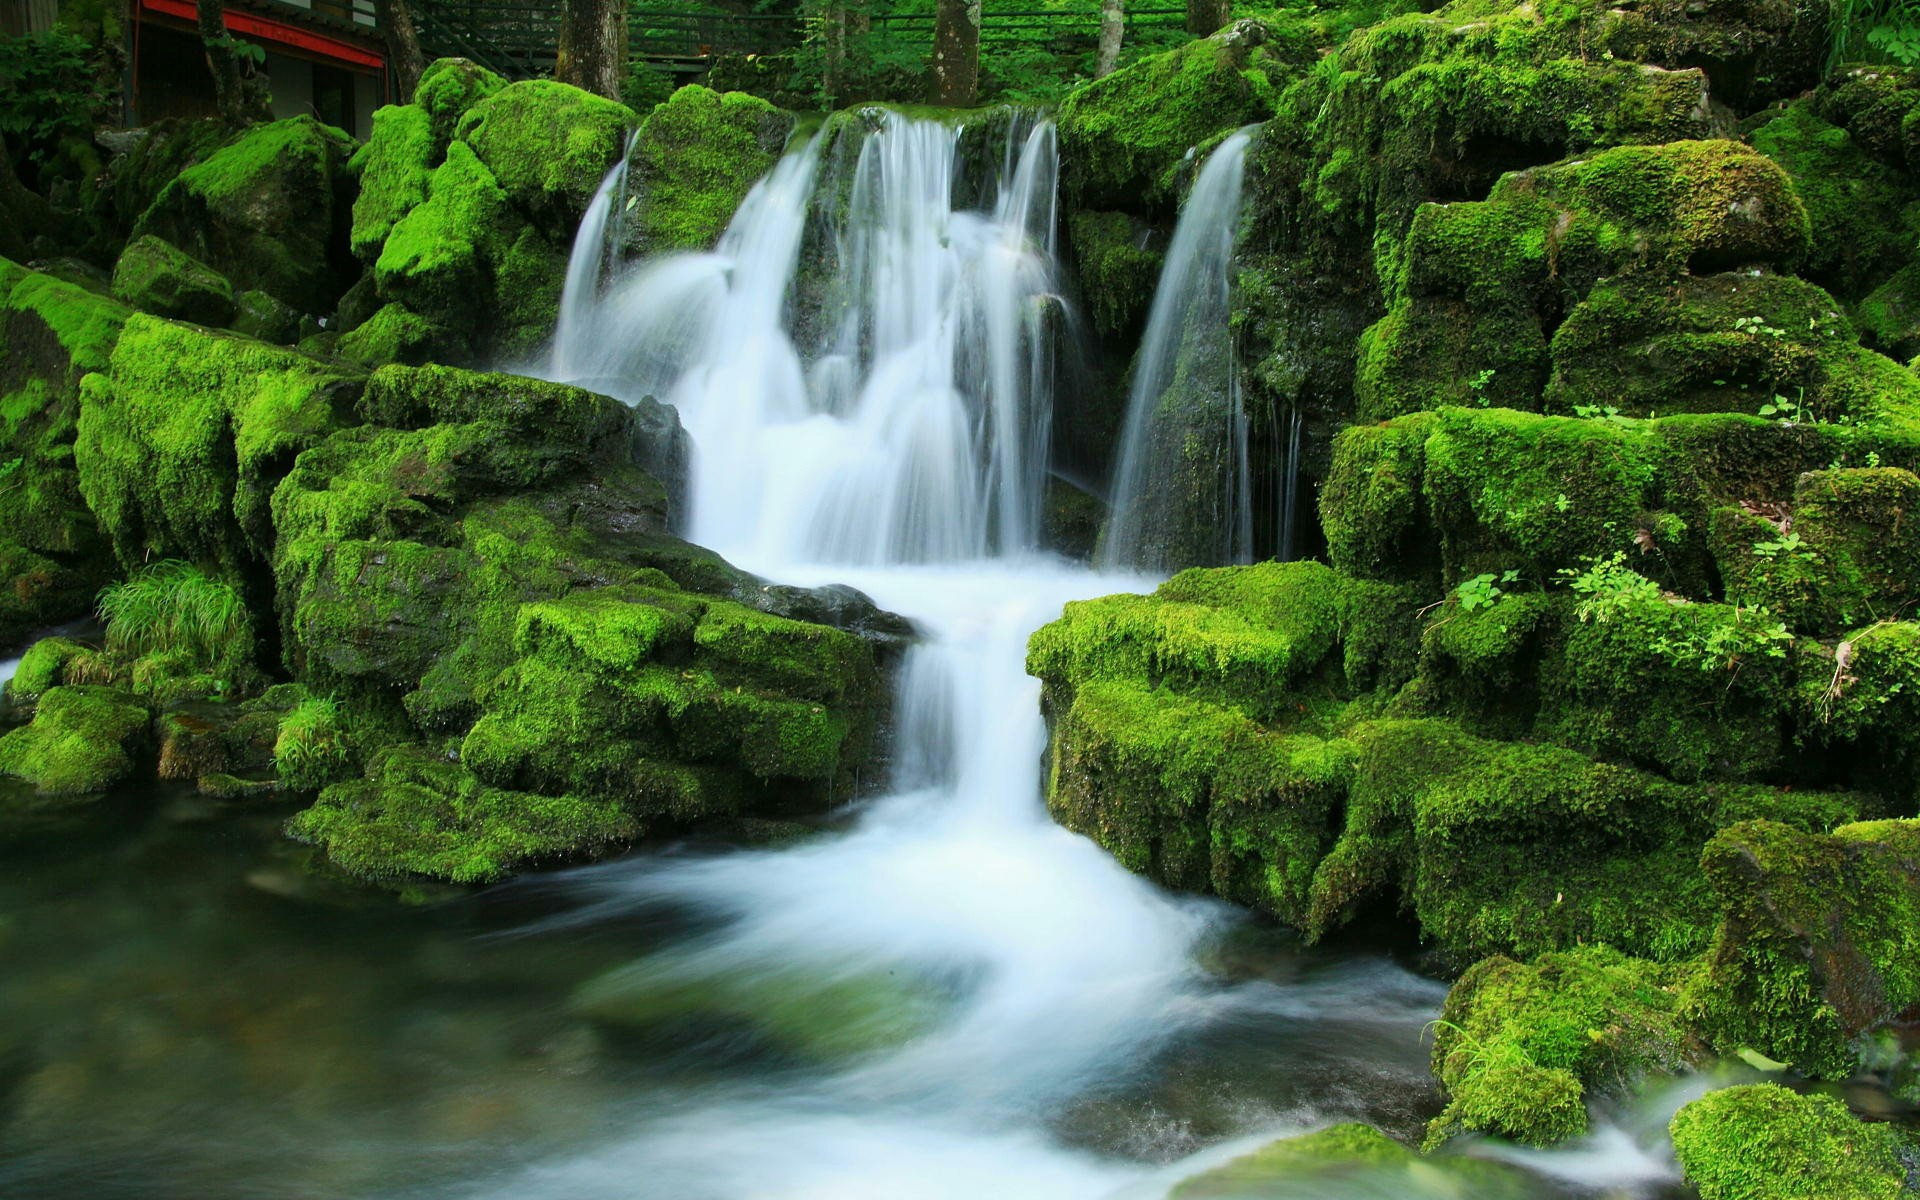 hd wallpaper waterfall download | pixelstalk